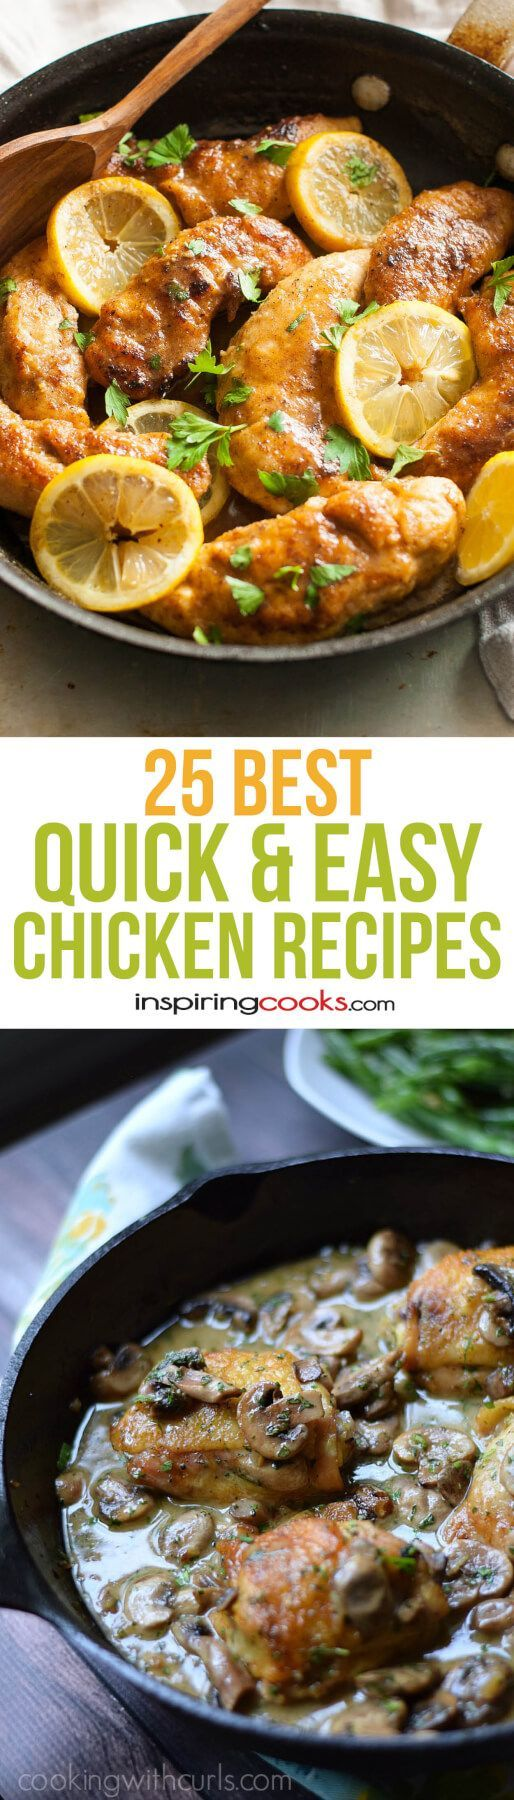 All these quick and easy chicken recipes look so good and so easy. I'm definitely going to try a bunch of these!